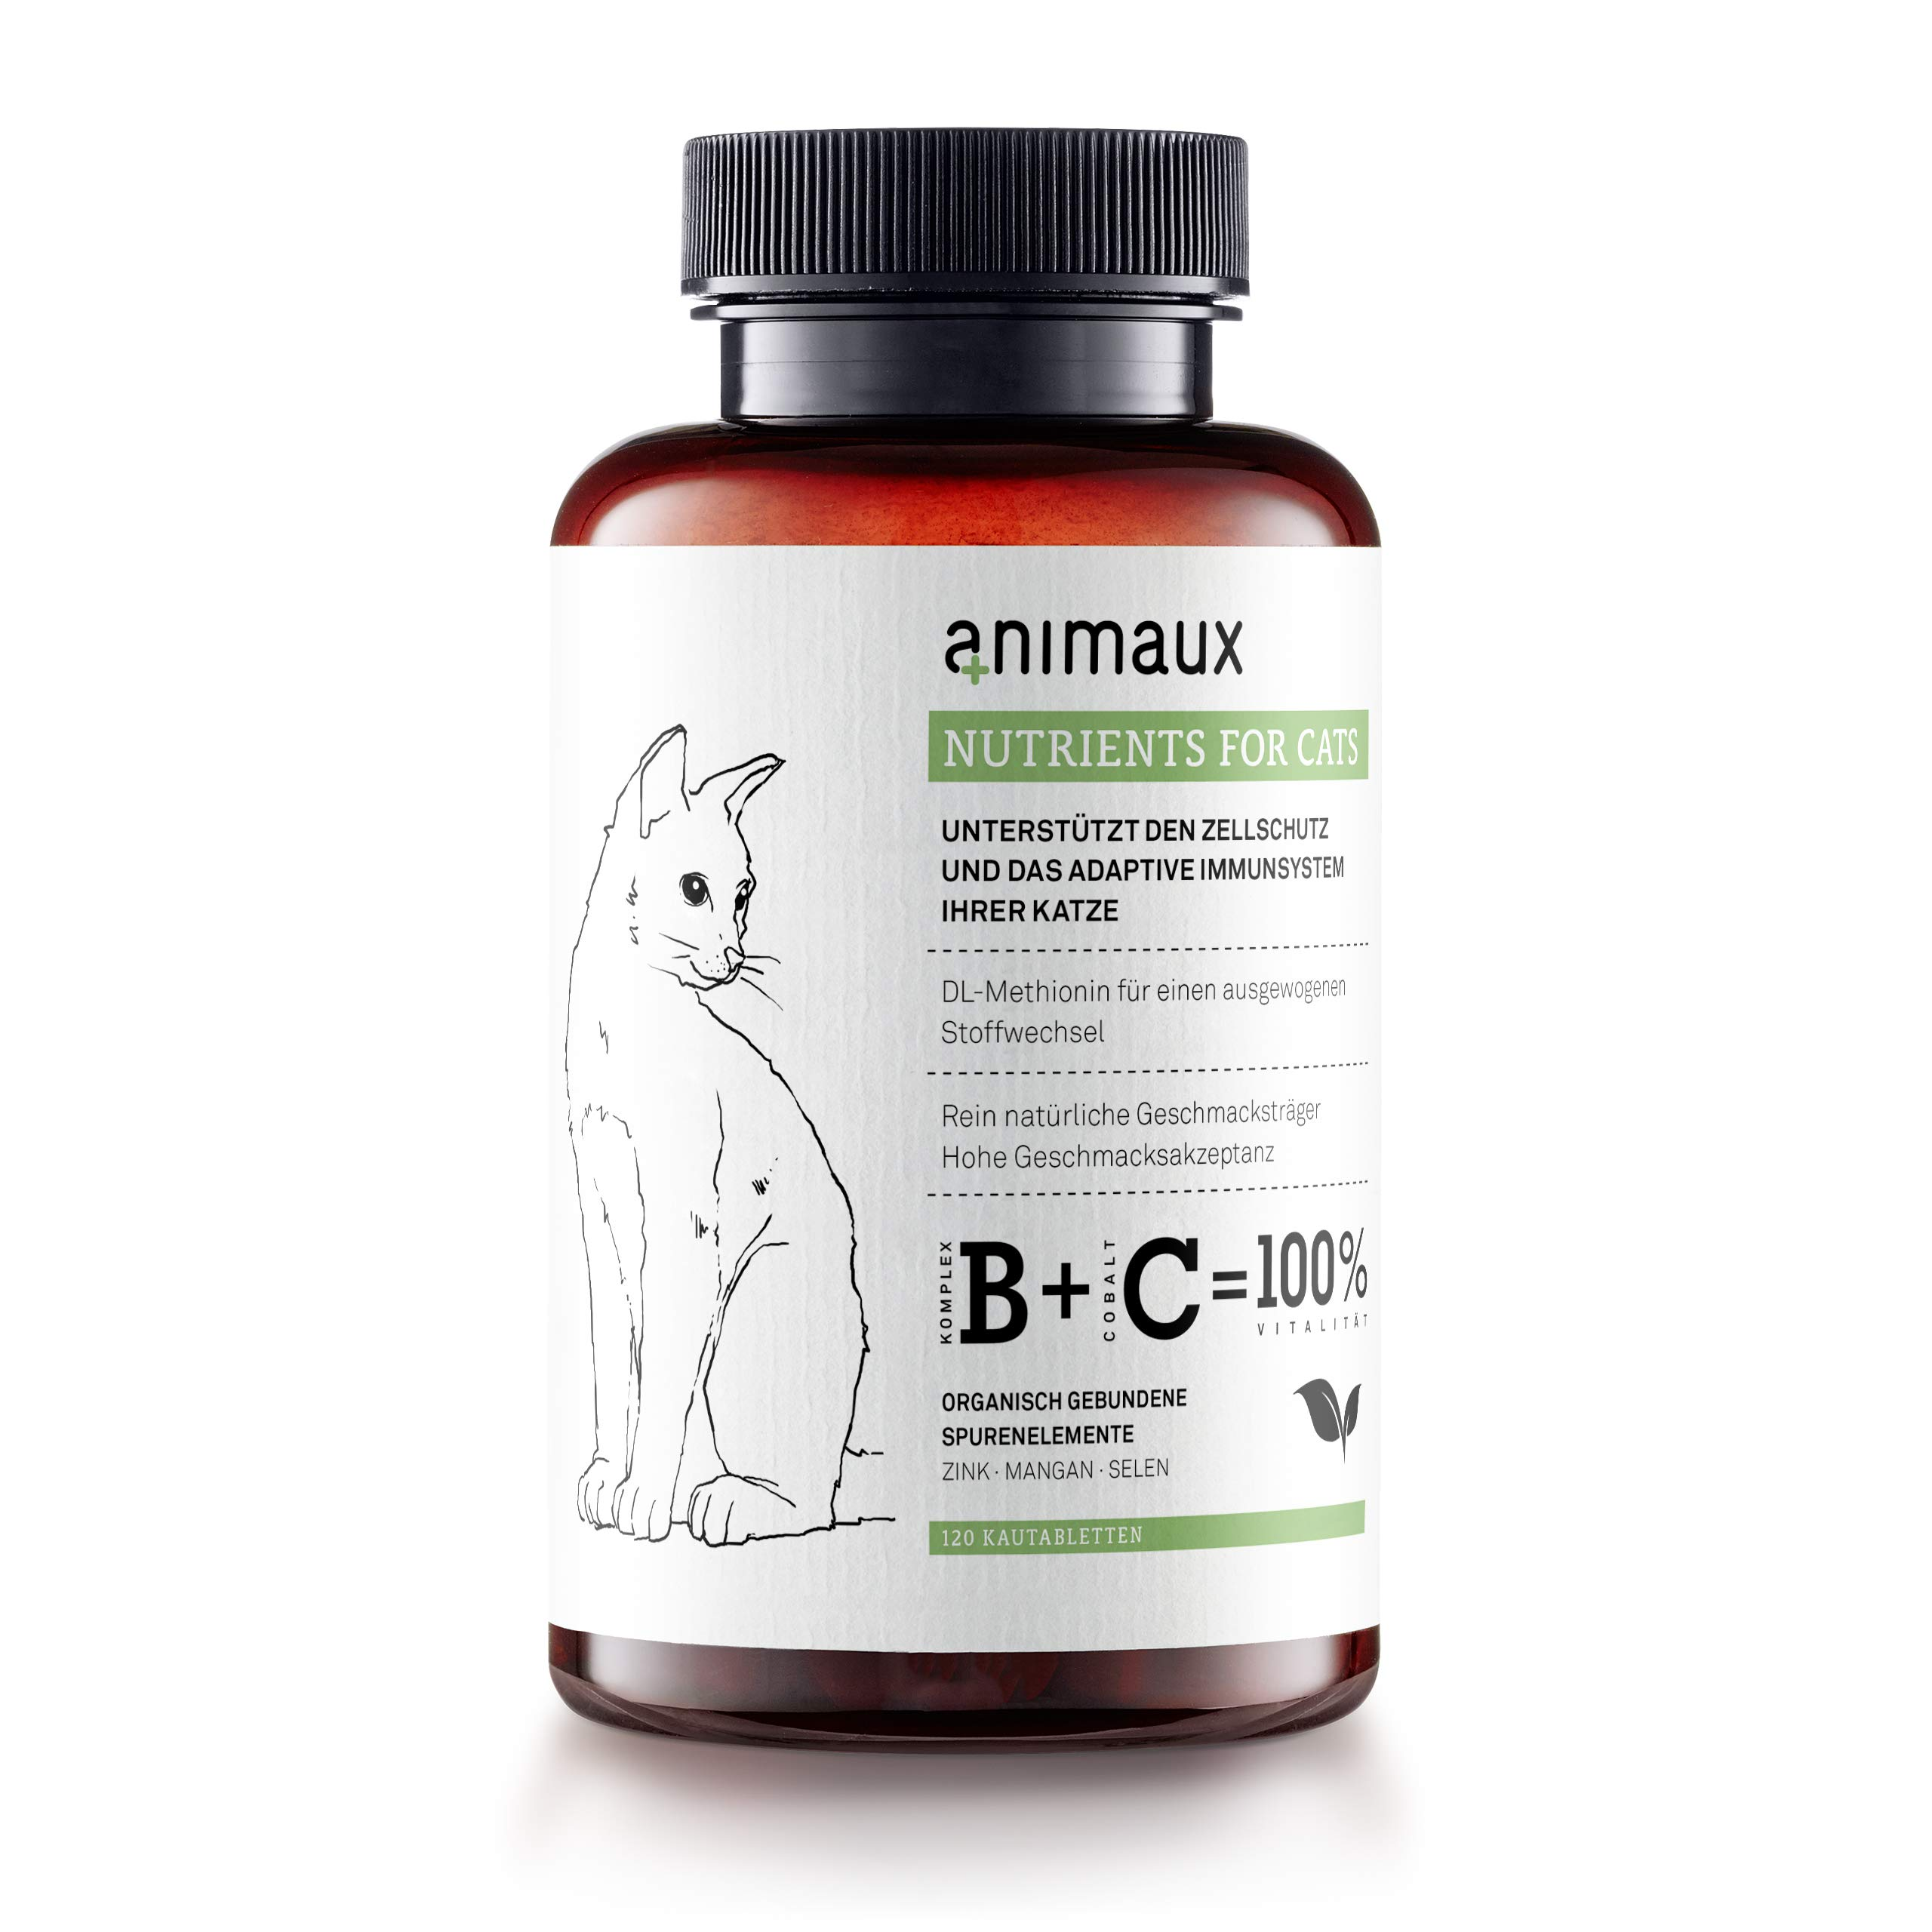 animaux - nutrients for Cats | All-Natural Cat Vitamins to Strengthen The Immune System | Supports Cell Protection in a Natural Way | Healthy Skin and Shiny Coat | 120 Chewable Tablets by animaux